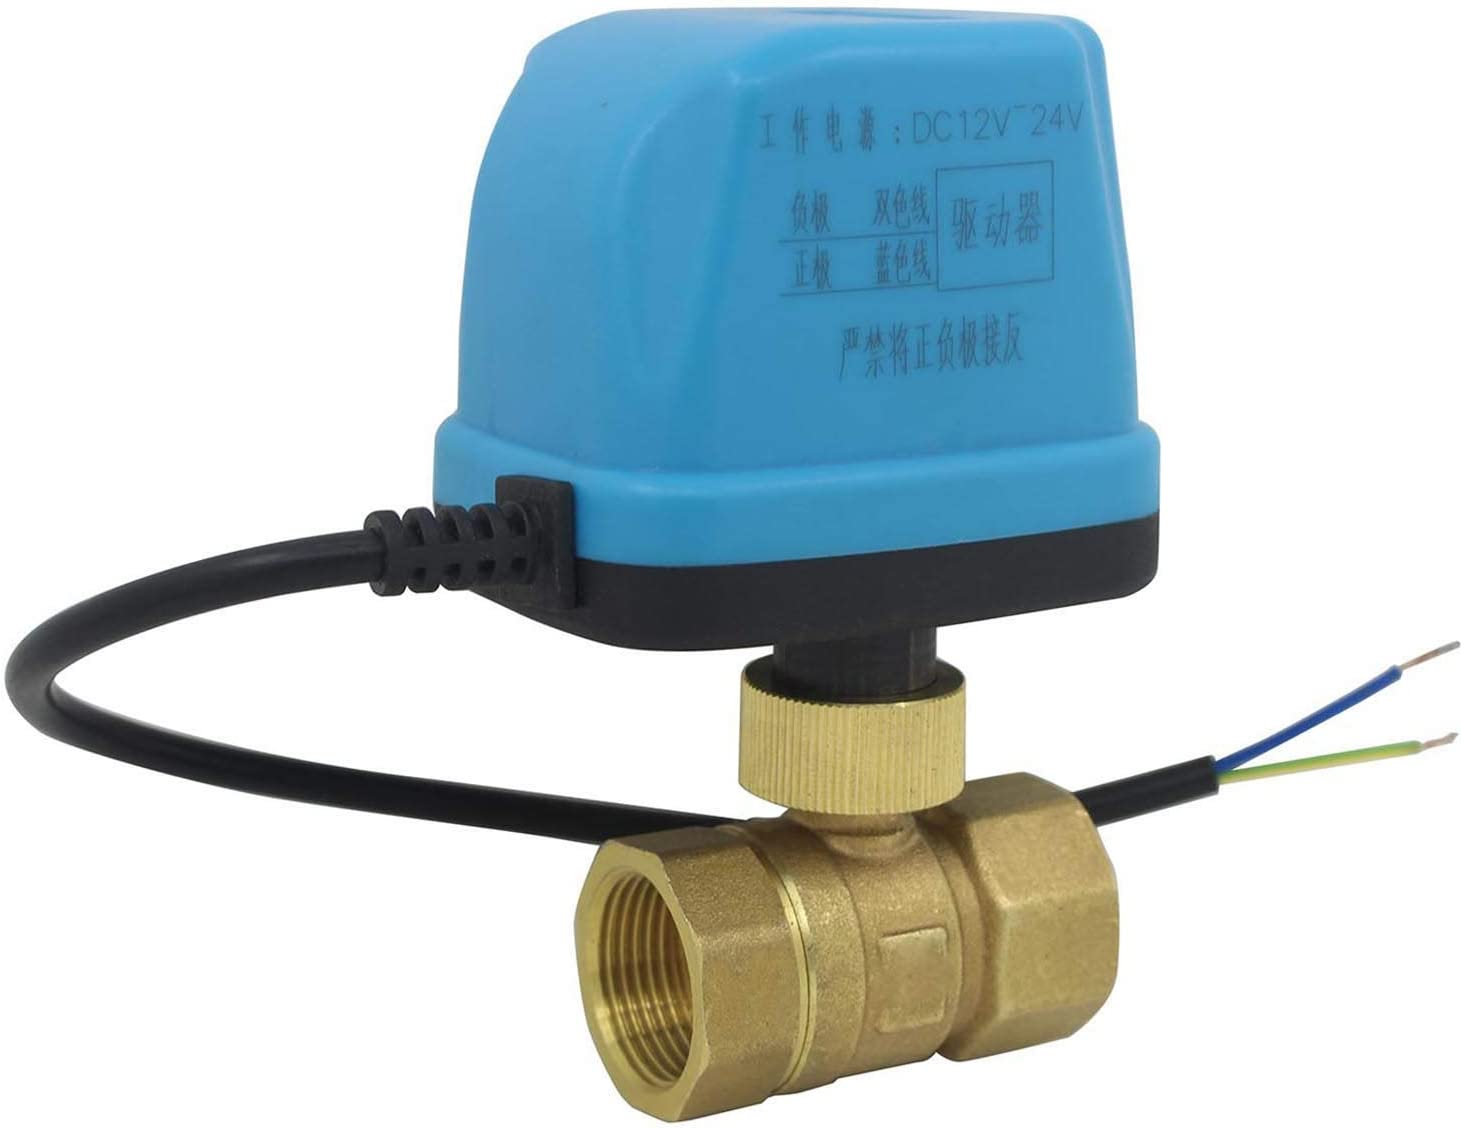 DN20-3//4 inch 1//2 3//4 1 1-1//4 1-1//2 2 inch 12v ~ 24v Normally Open Motorized Ball Valve 2 Way motorised Valve 2 Wires 1 Piece